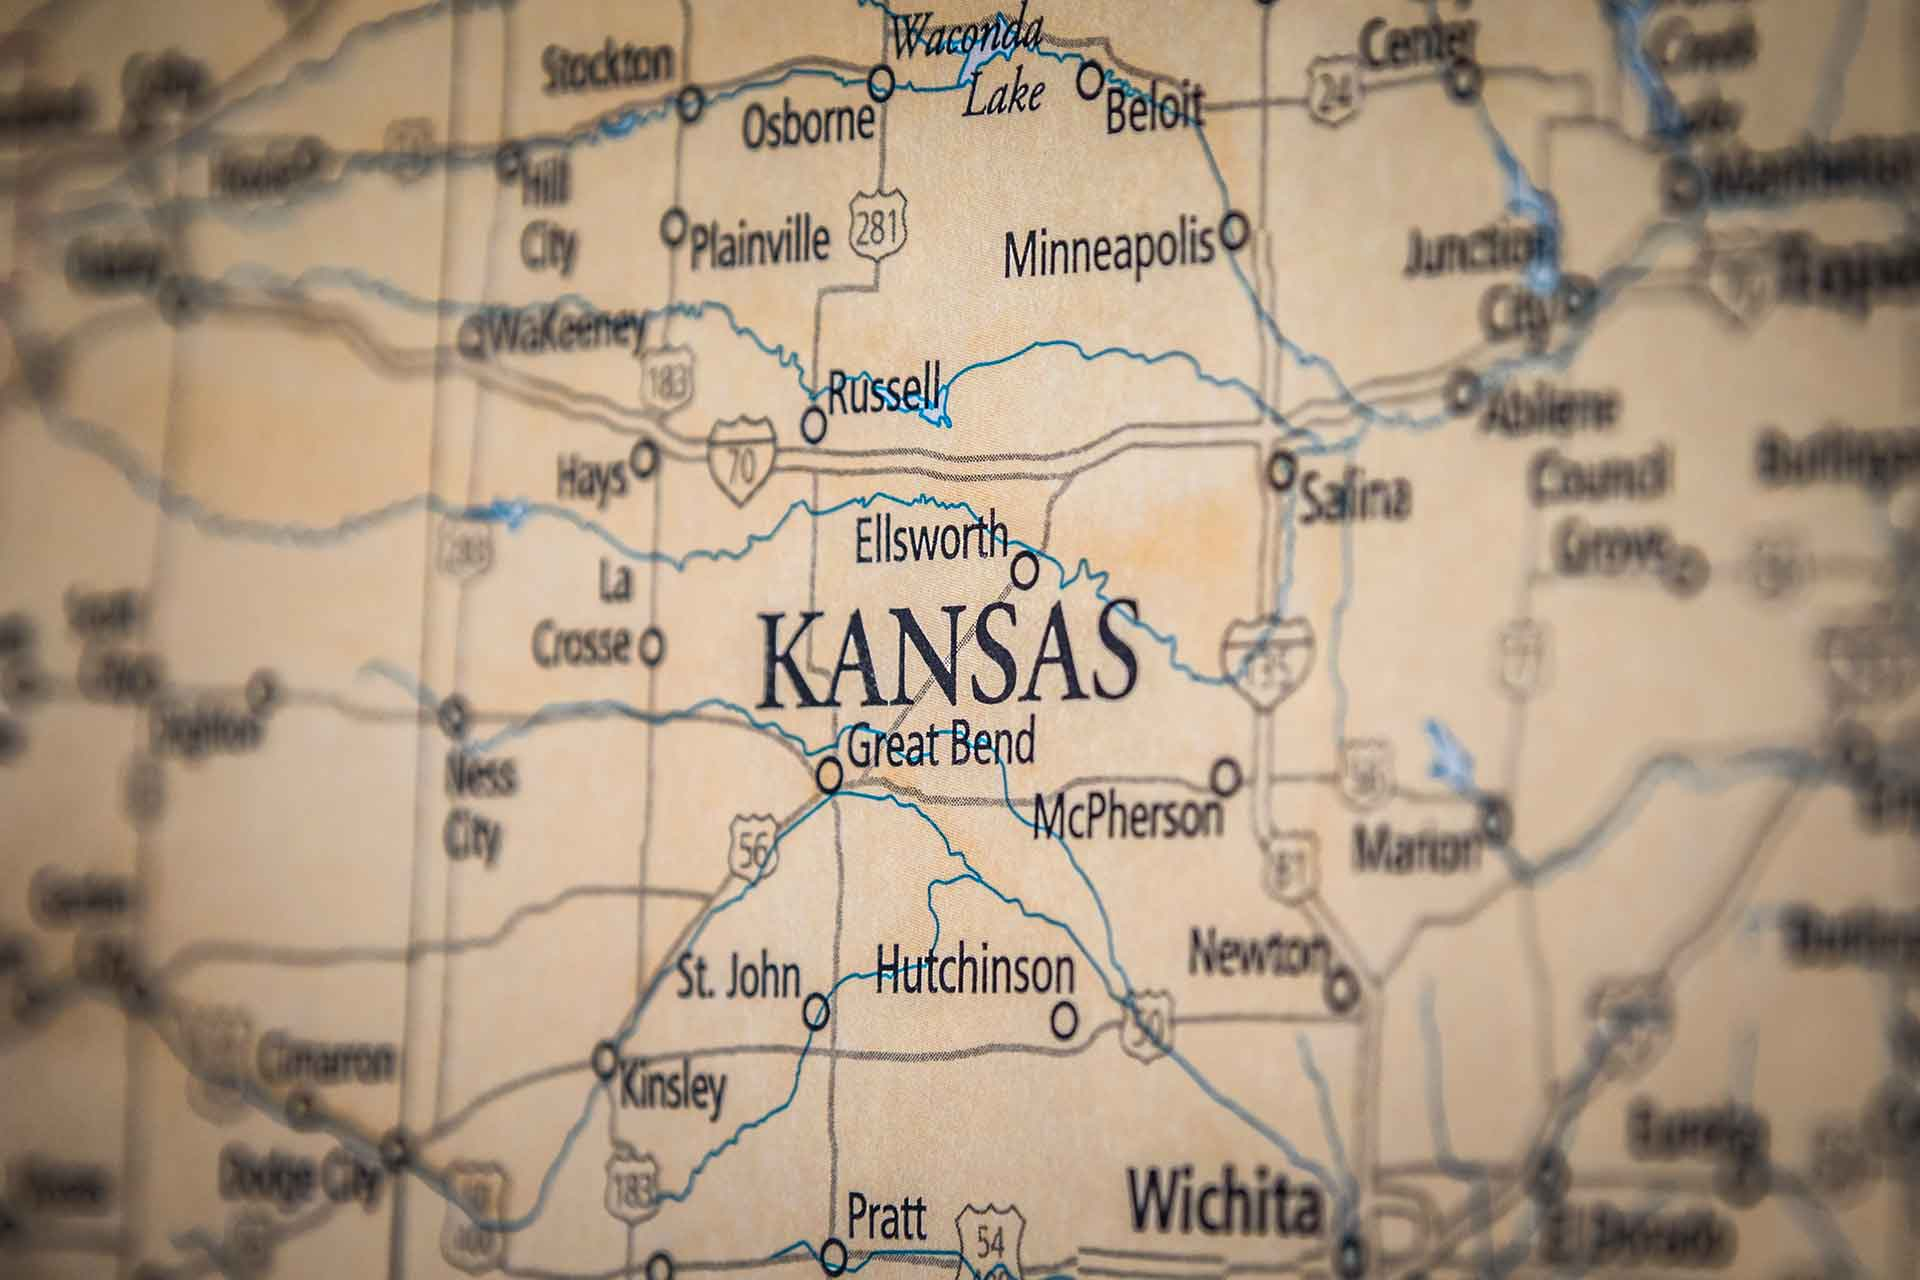 Old Historical City, County and State Maps of Kansas